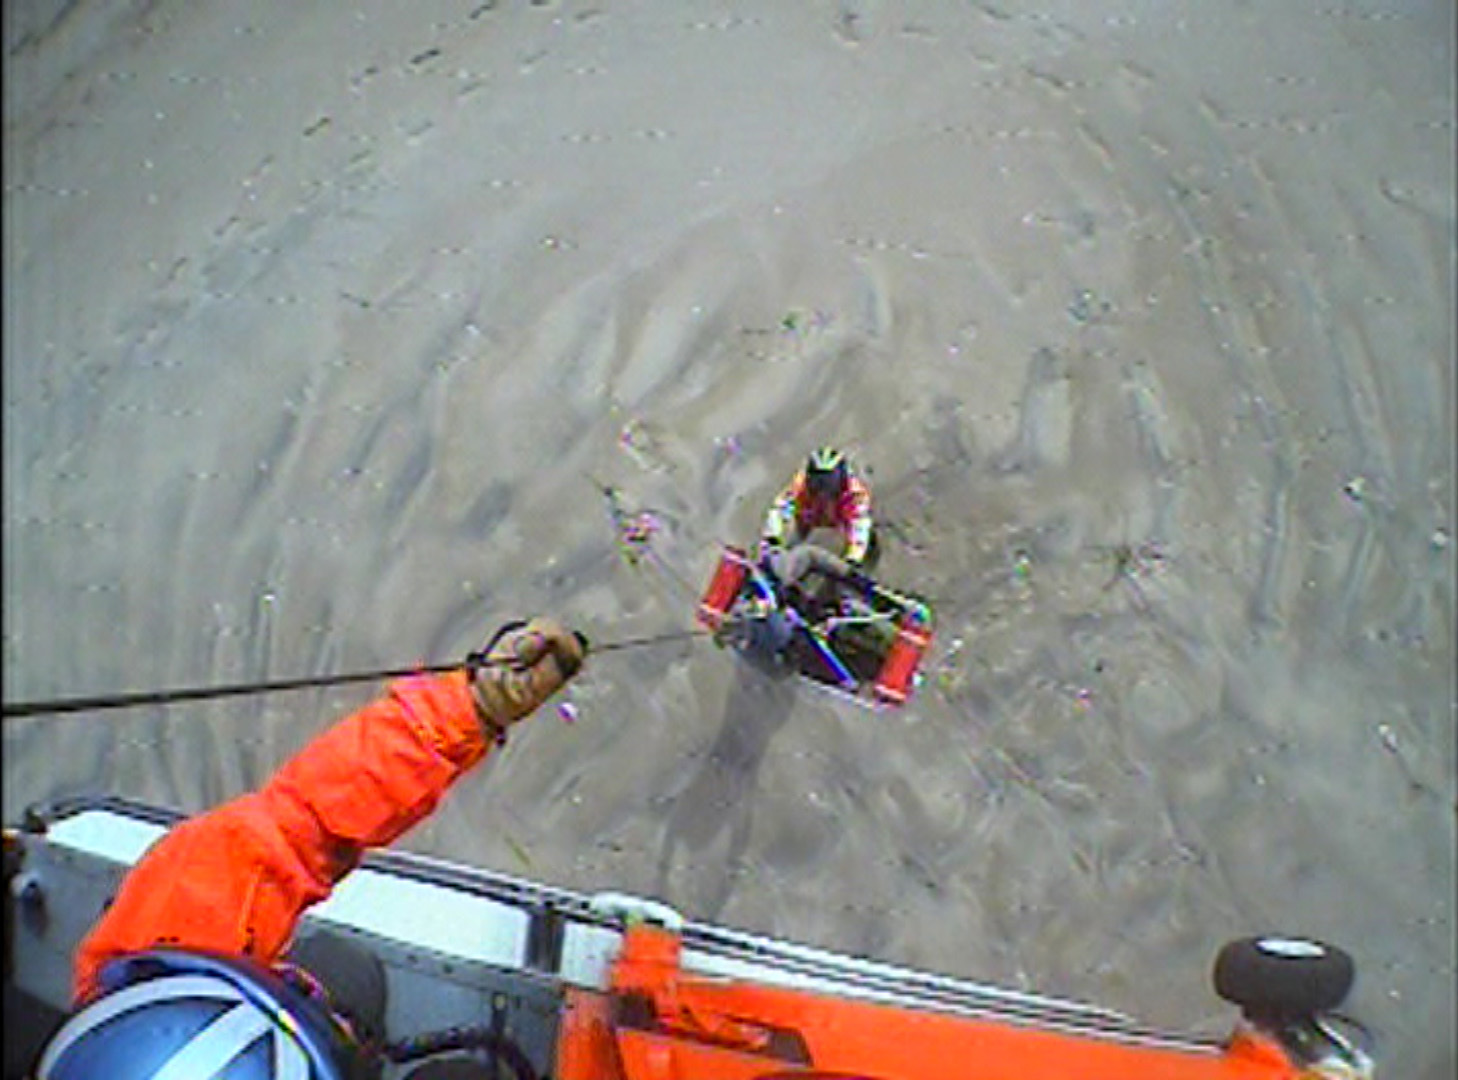 Coast Guard rescues 2 canoers